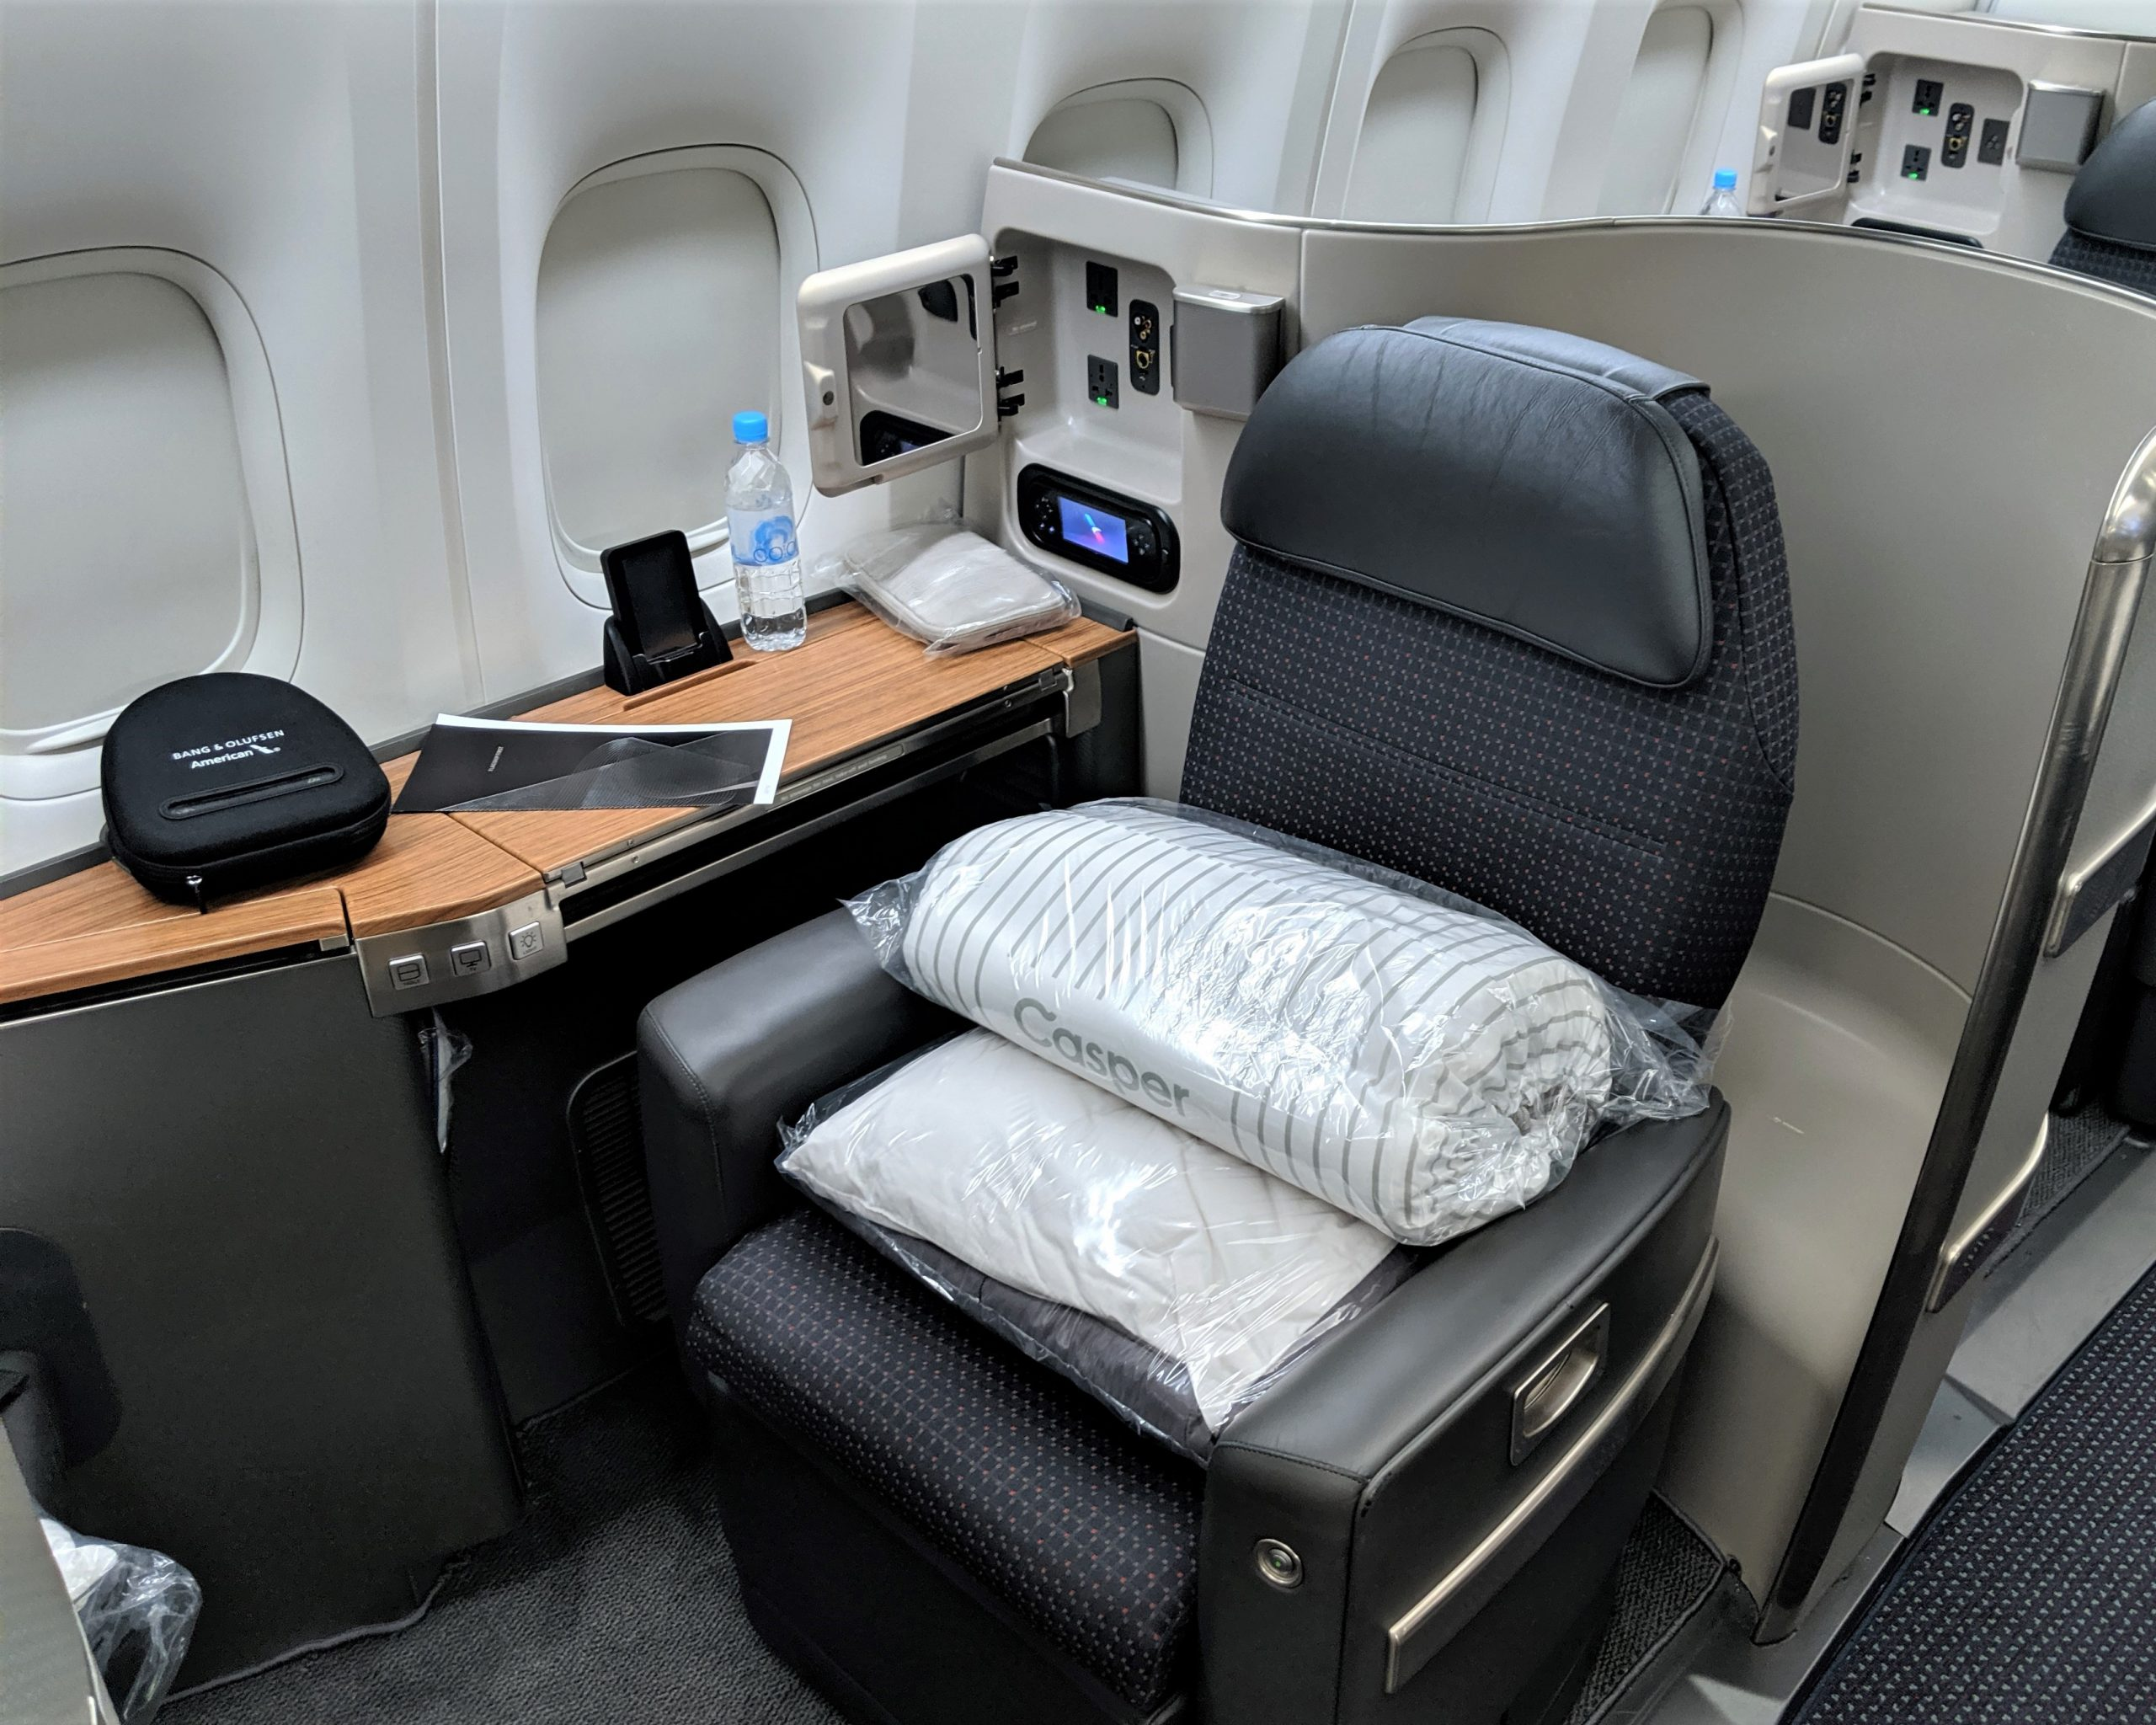 How To Fly Lie Flat First Class Seats Within The U S Awardwallet Blog